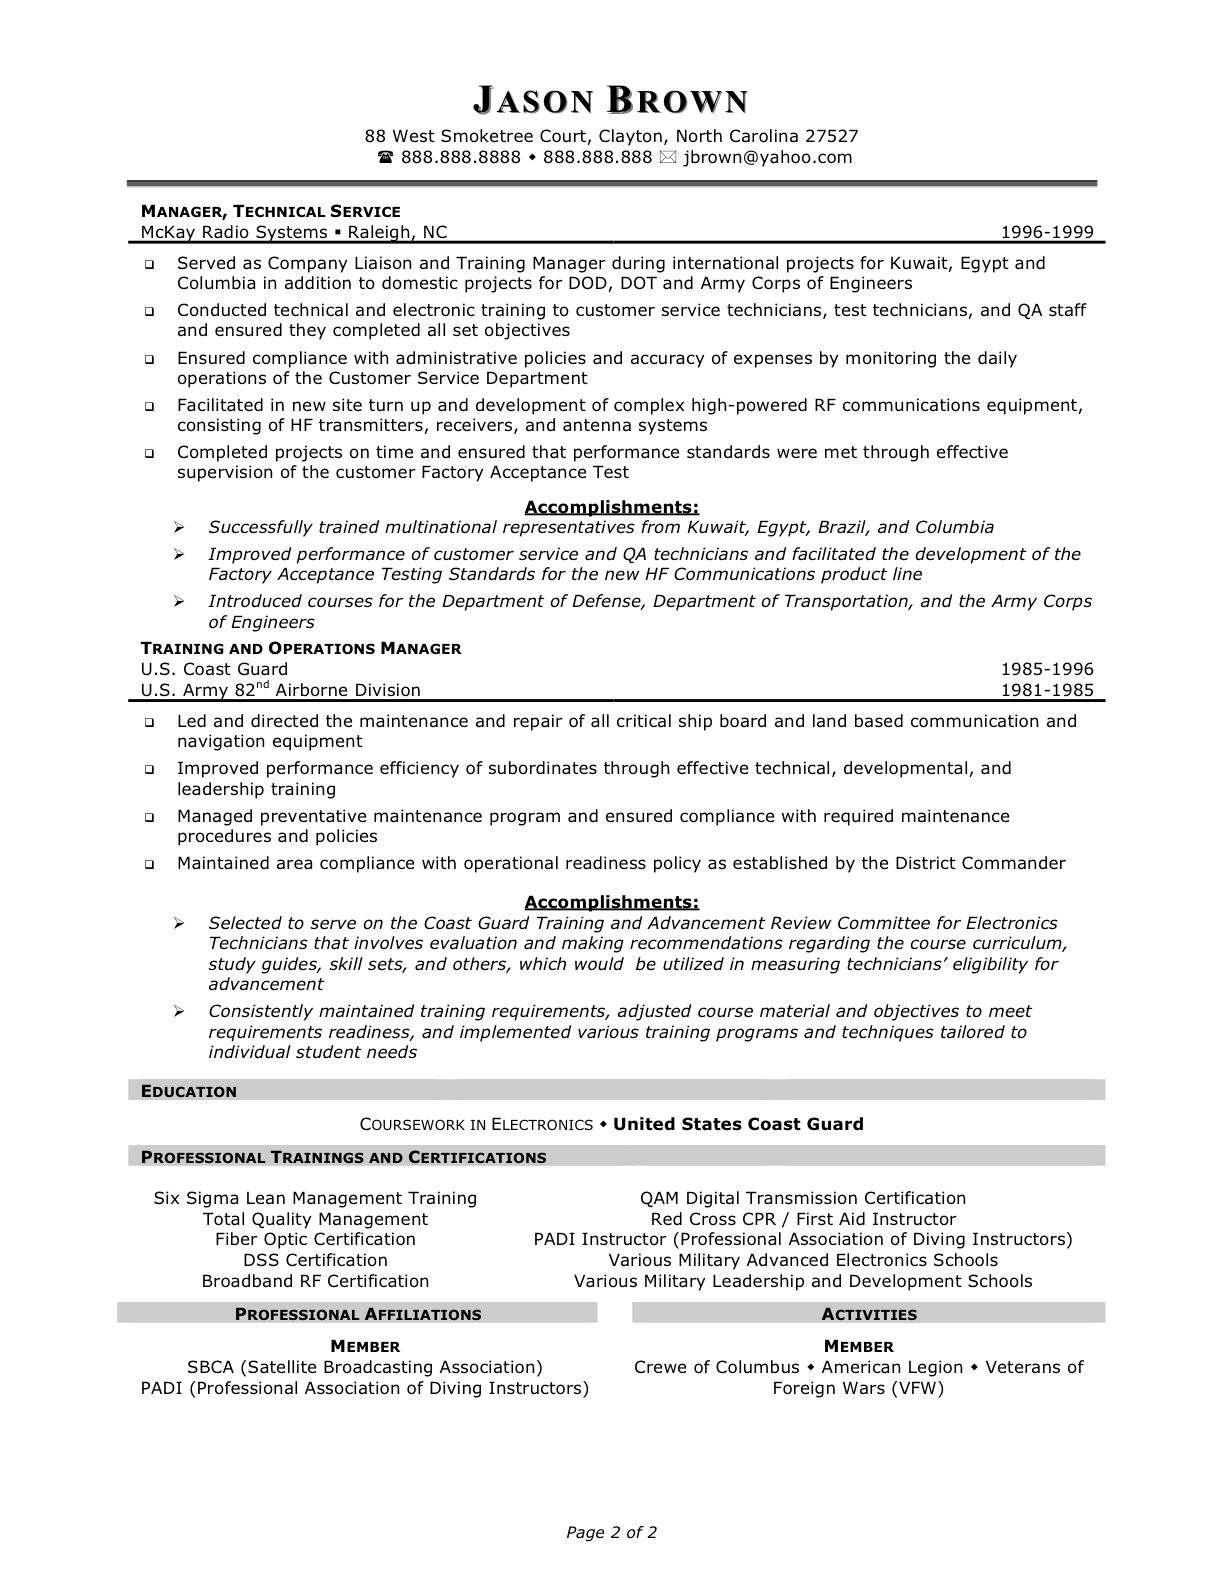 enterprise management trainee program resume     resumecareer info  enterprise